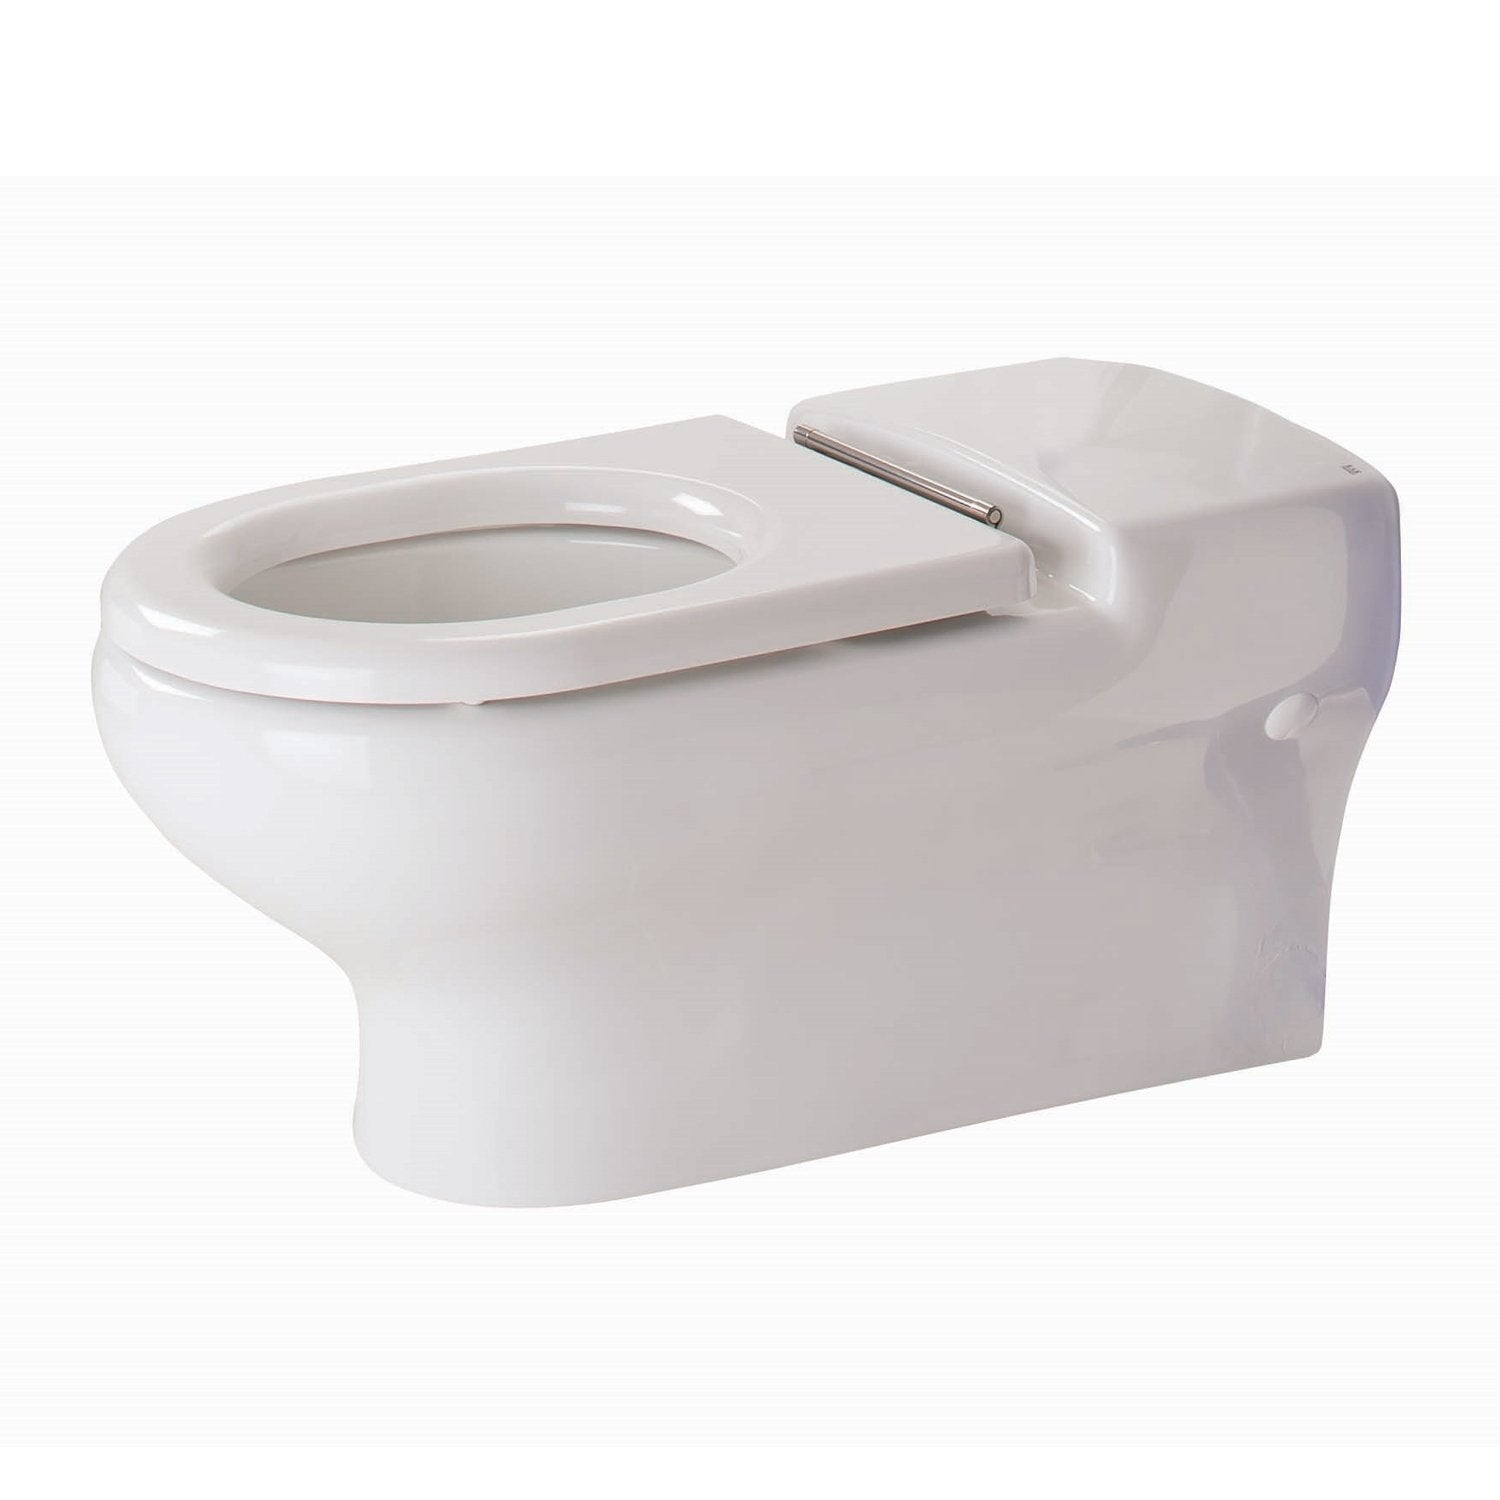 RAK Compact Special Needs Wall Hung Toilet 700mm Projection - With Ring Seat